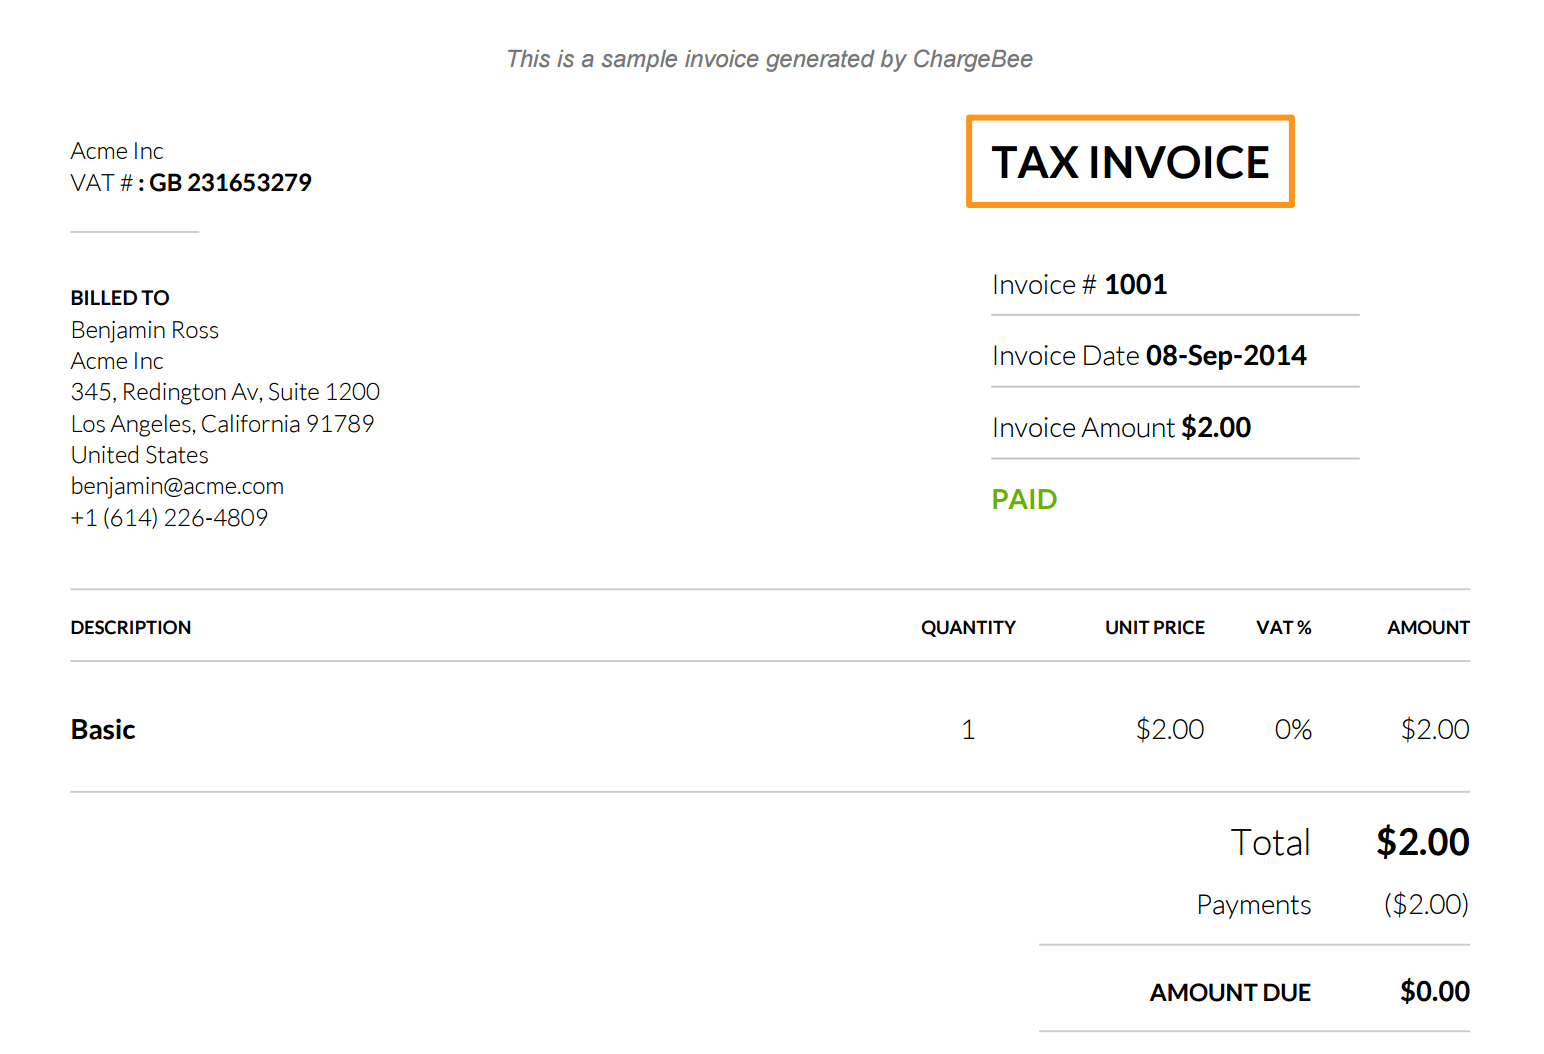 Patriotexpressus  Scenic Customizing Invoice Title With Hot Back To Timeline With Charming Property Tax Receipt Online Also How Much To Send A Certified Letter With Return Receipt In Addition Receipt Letter Example And Fixed Deposit Receipt As Well As Indian Depository Receipts Additionally Charity Tax Receipt From Chargebeecom With Patriotexpressus  Hot Customizing Invoice Title With Charming Back To Timeline And Scenic Property Tax Receipt Online Also How Much To Send A Certified Letter With Return Receipt In Addition Receipt Letter Example From Chargebeecom